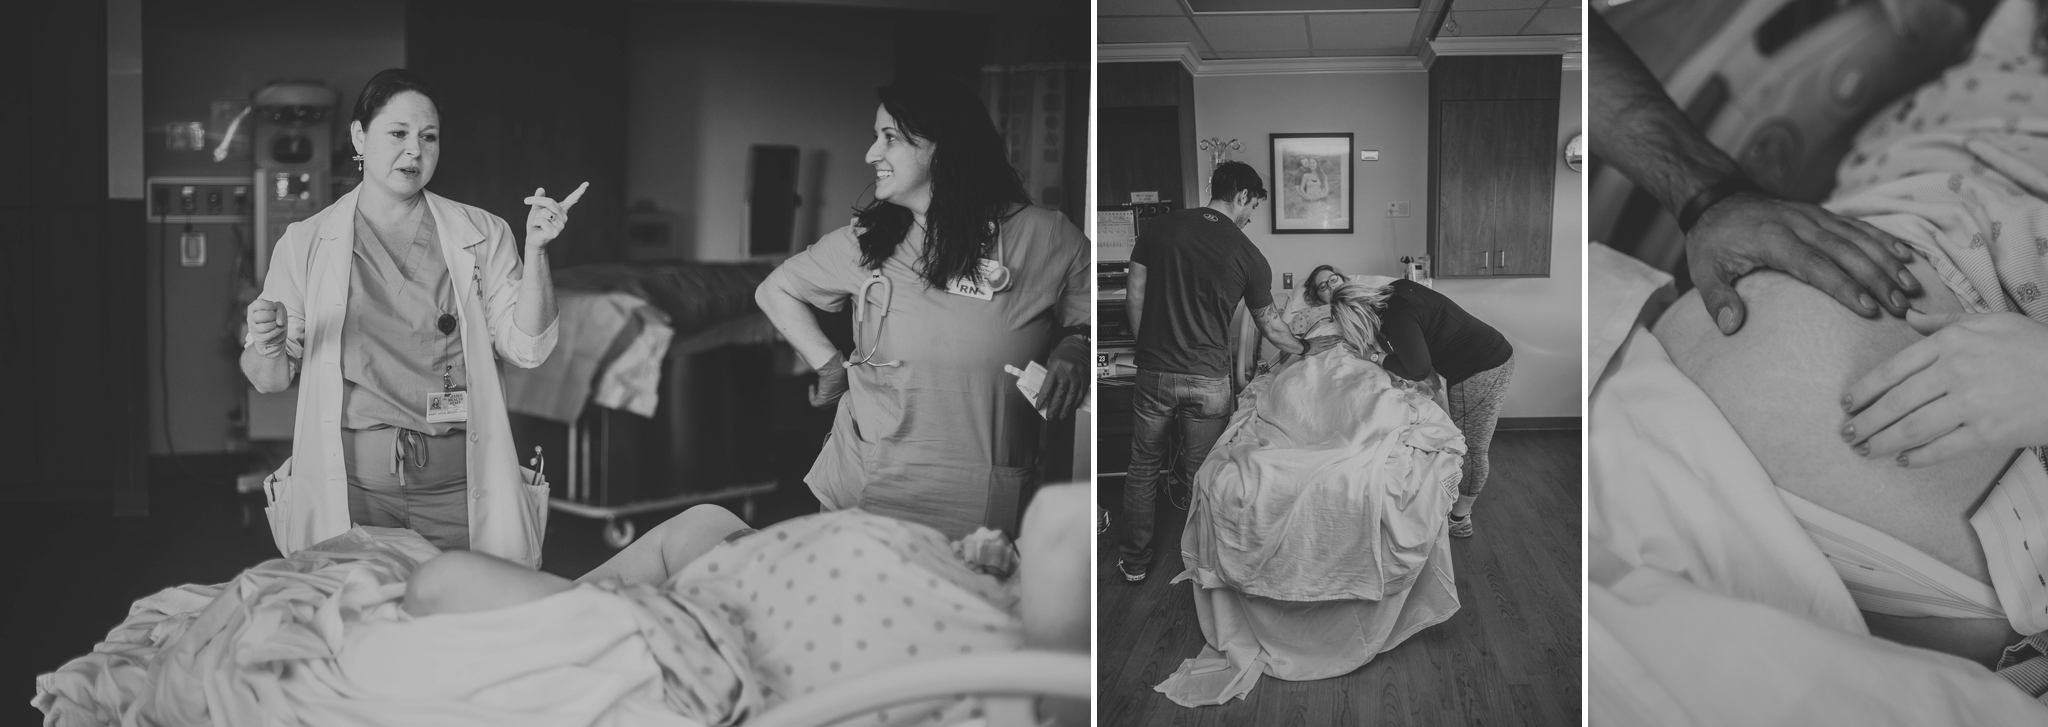 Fayetteville North Carolina Birth Photography at Cape Fear Valley Hospital